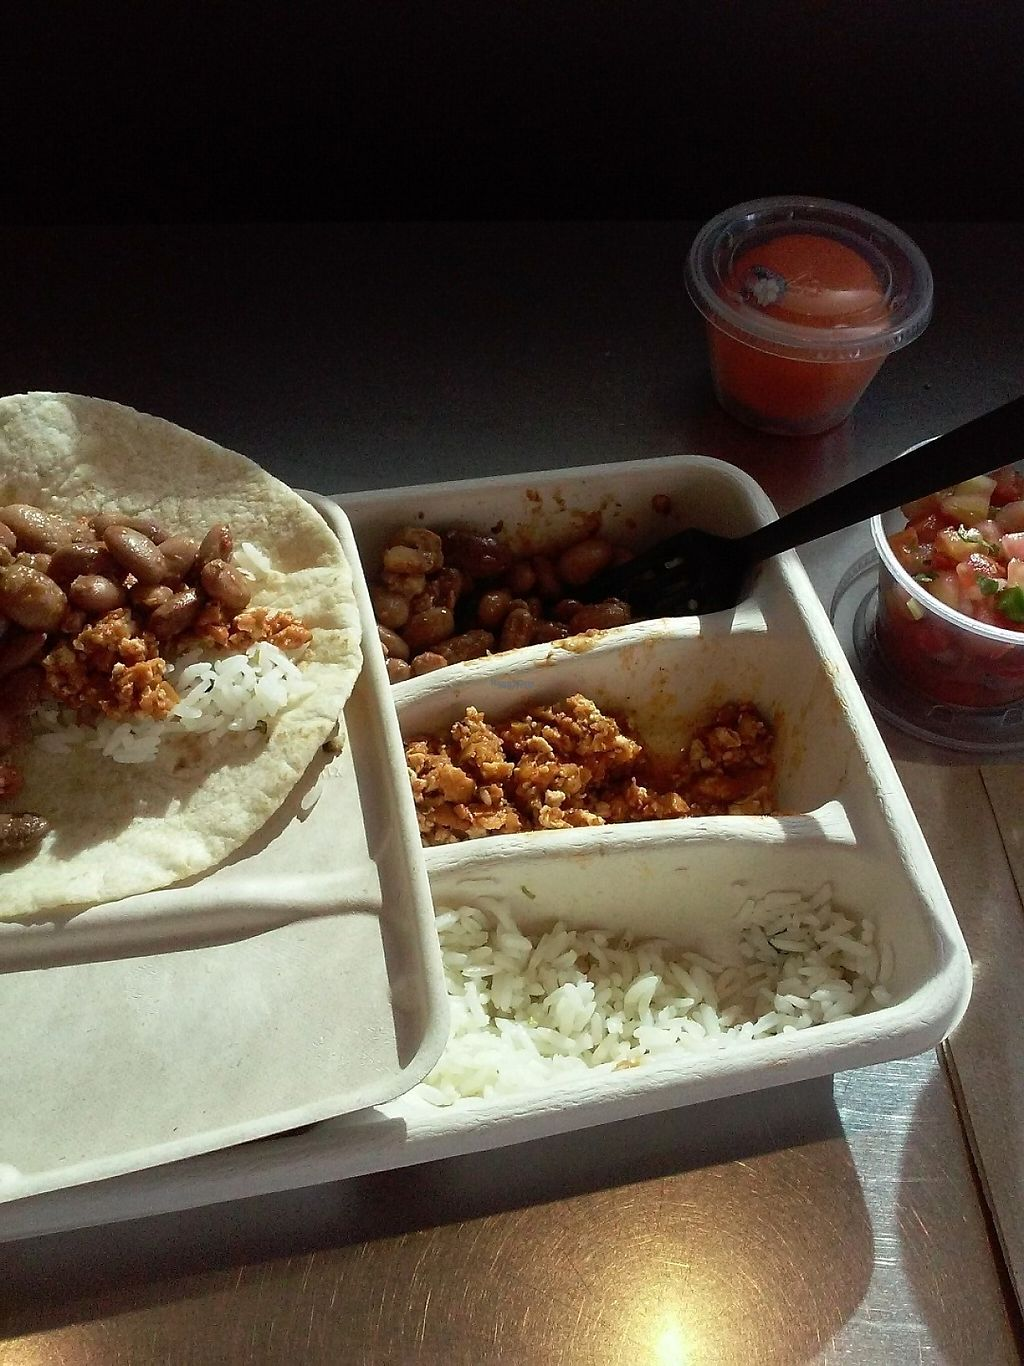 """Photo of Chipotle   by <a href=""""/members/profile/anastronomy"""">anastronomy</a> <br/>The build your own Kid's meal. I think it's the perfect portion size for me. The pico de gallo on the side complements the tacos.  <br/> January 21, 2017  - <a href='/contact/abuse/image/84240/214369'>Report</a>"""